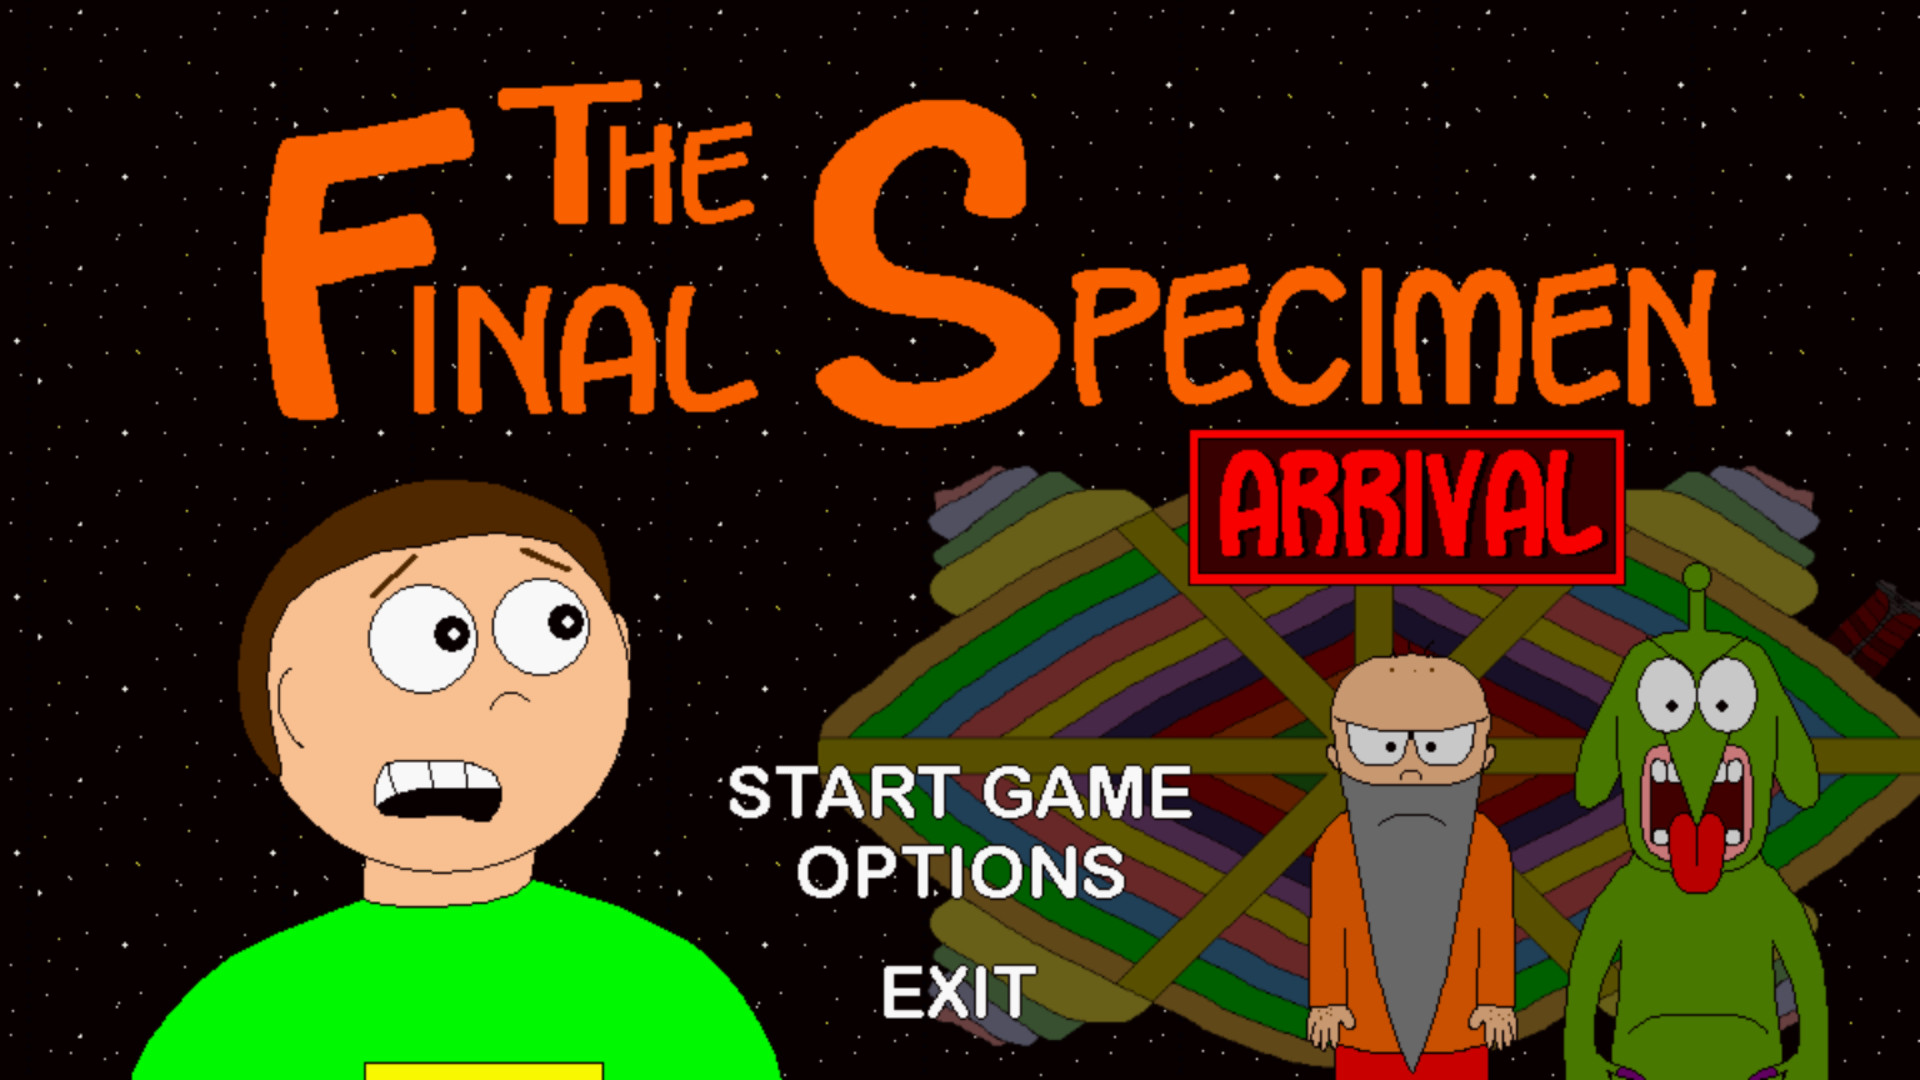 The Final Specimen: Arrival screenshot